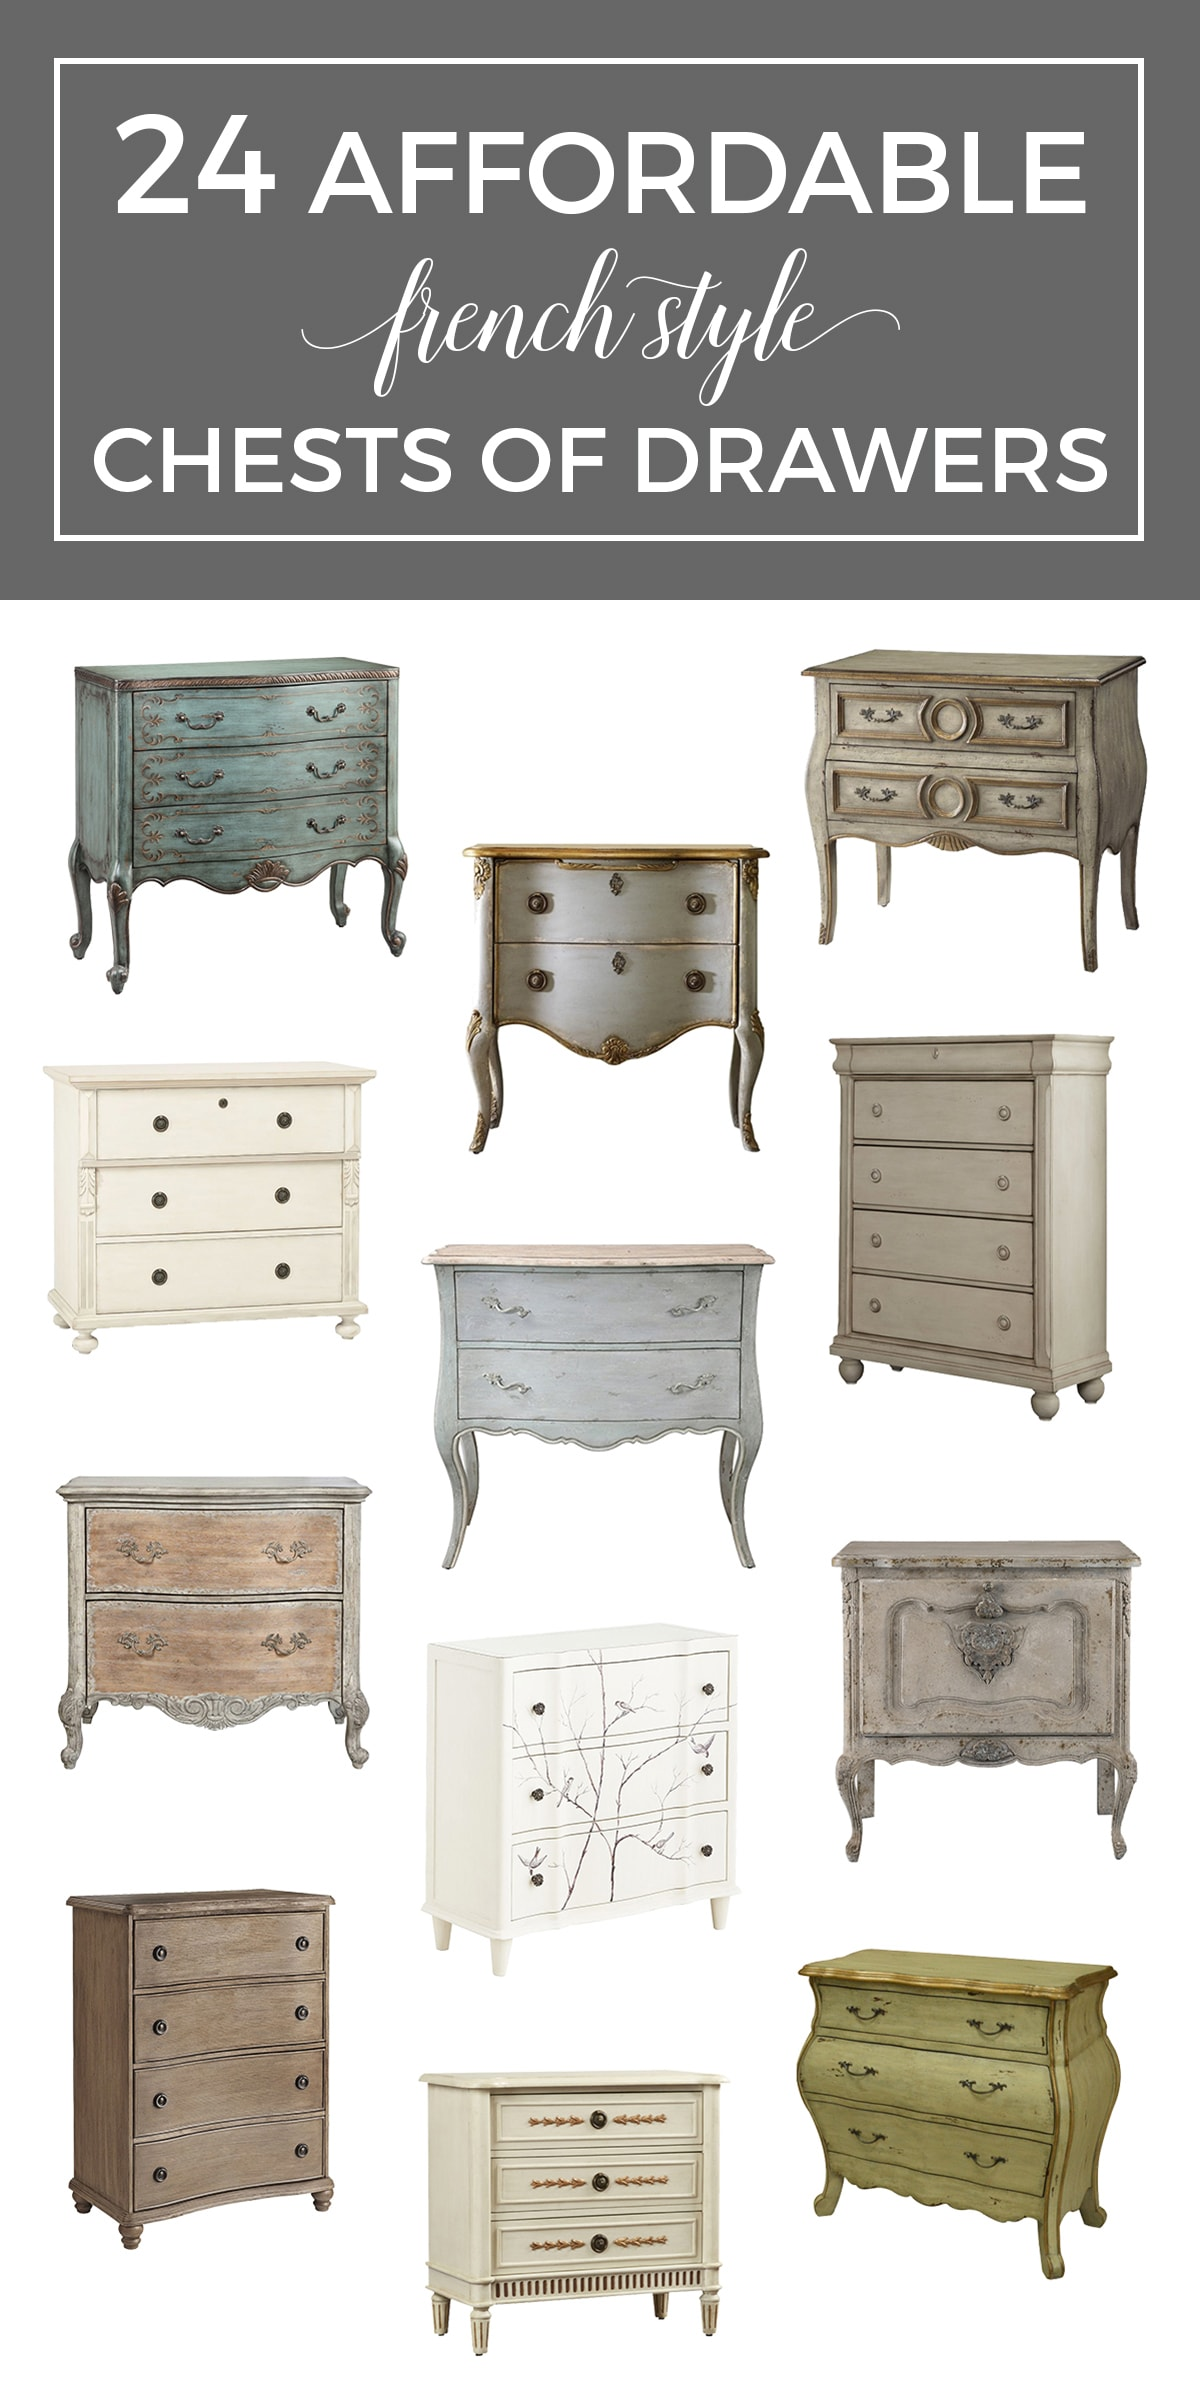 The French Dresser: 24 Affordable French Style Chests of Drawers